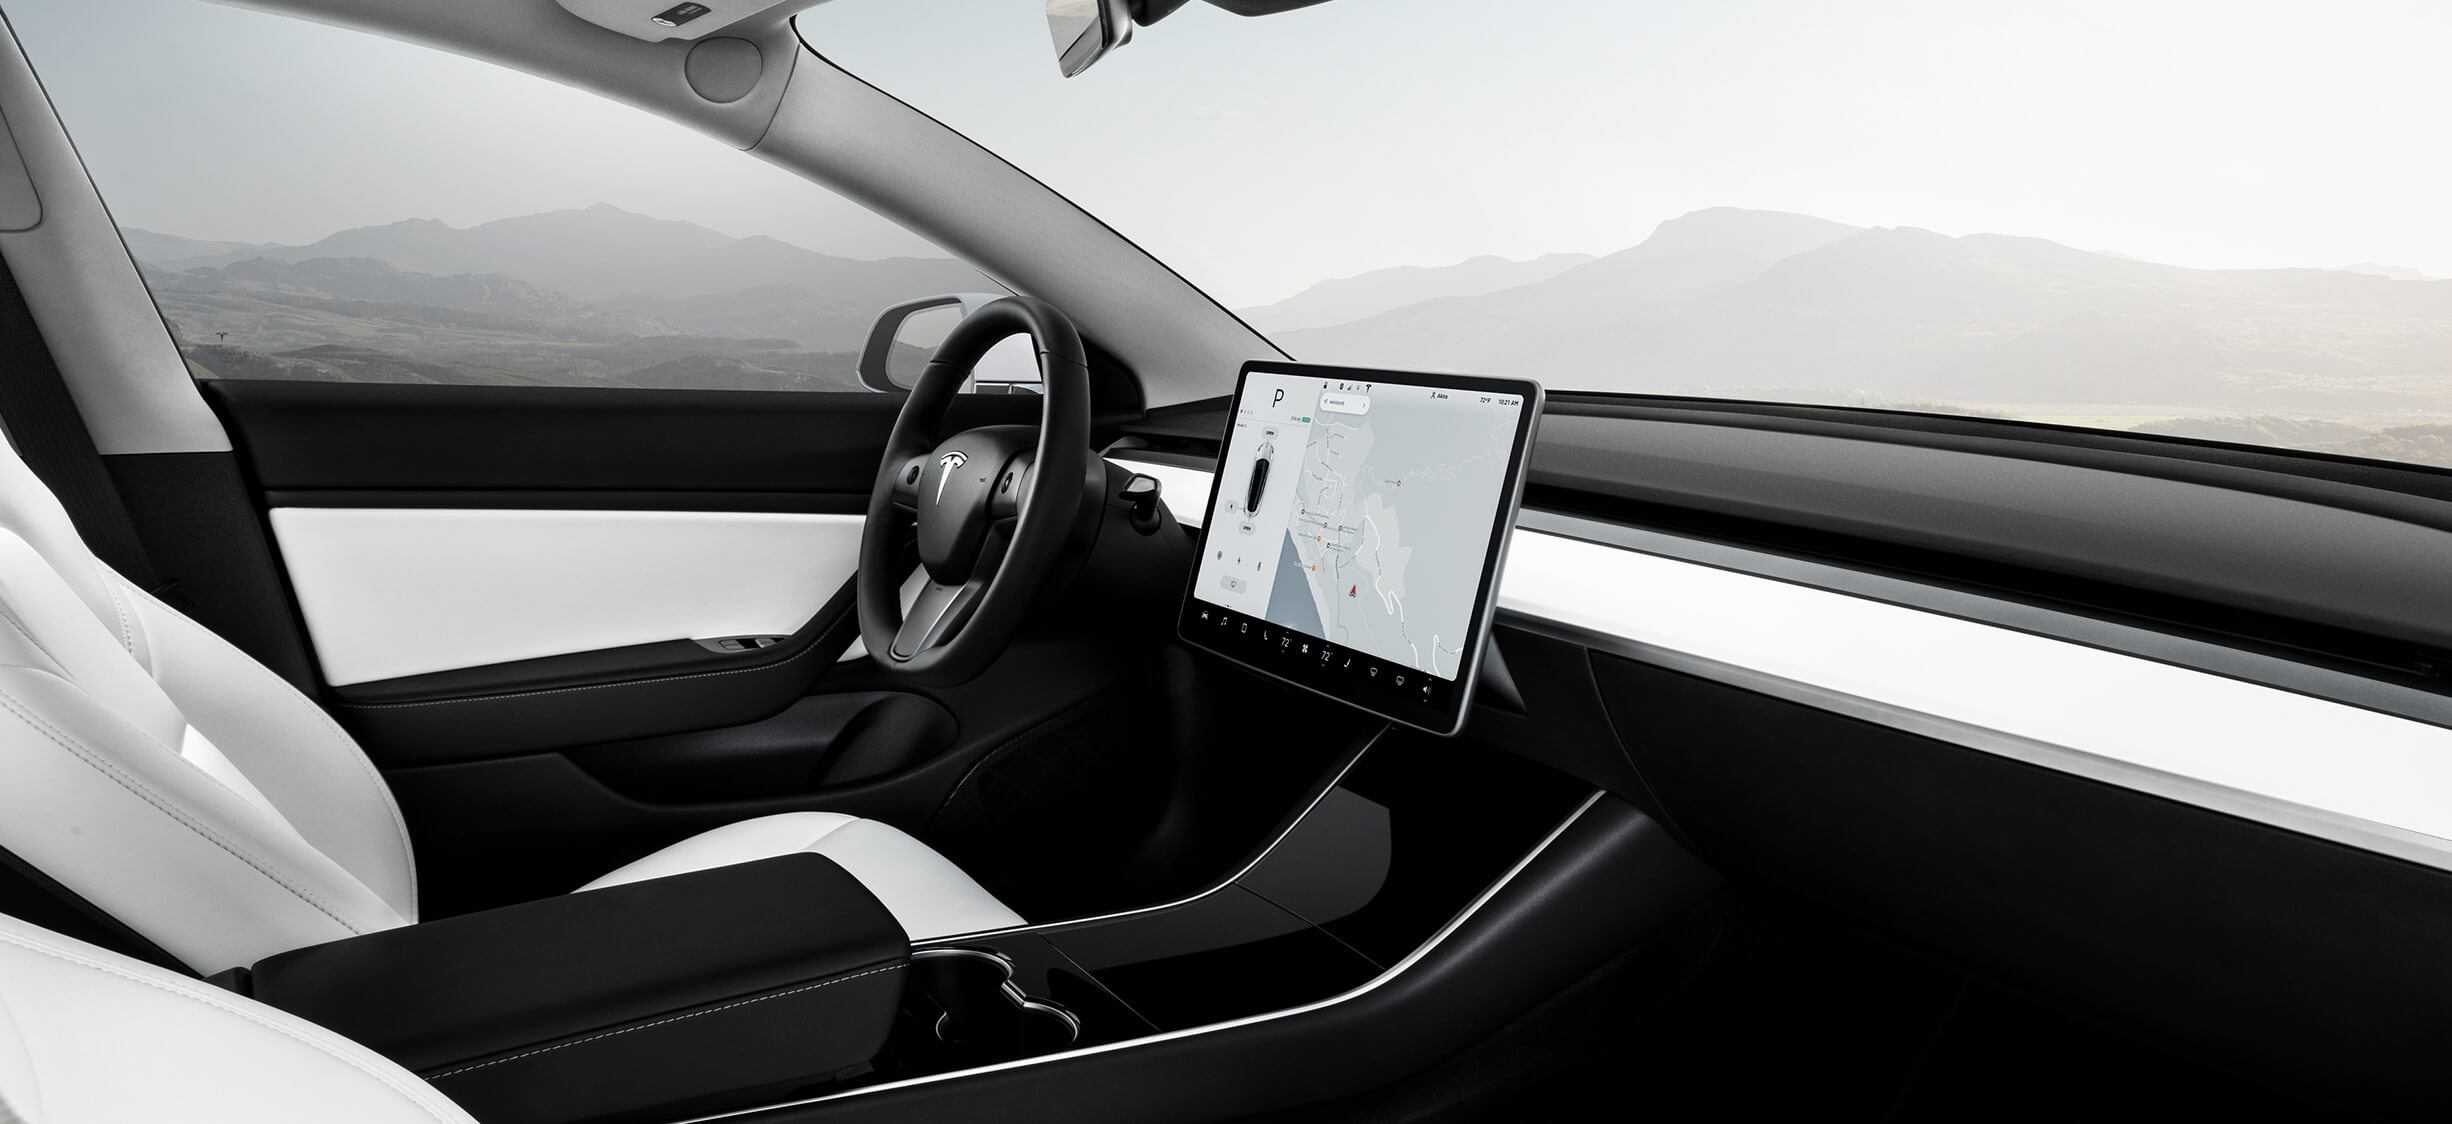 Tesla improves regenerative braking on Model 3 through over-the-air software update